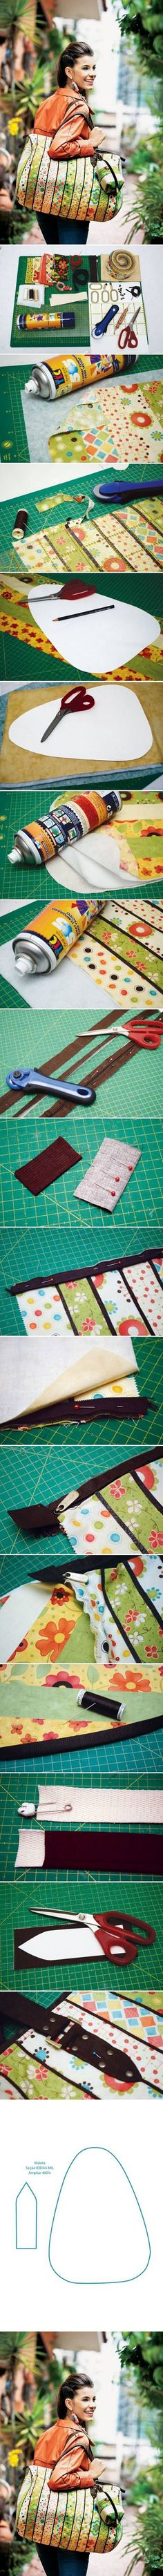 DIY Sew Travel Bag